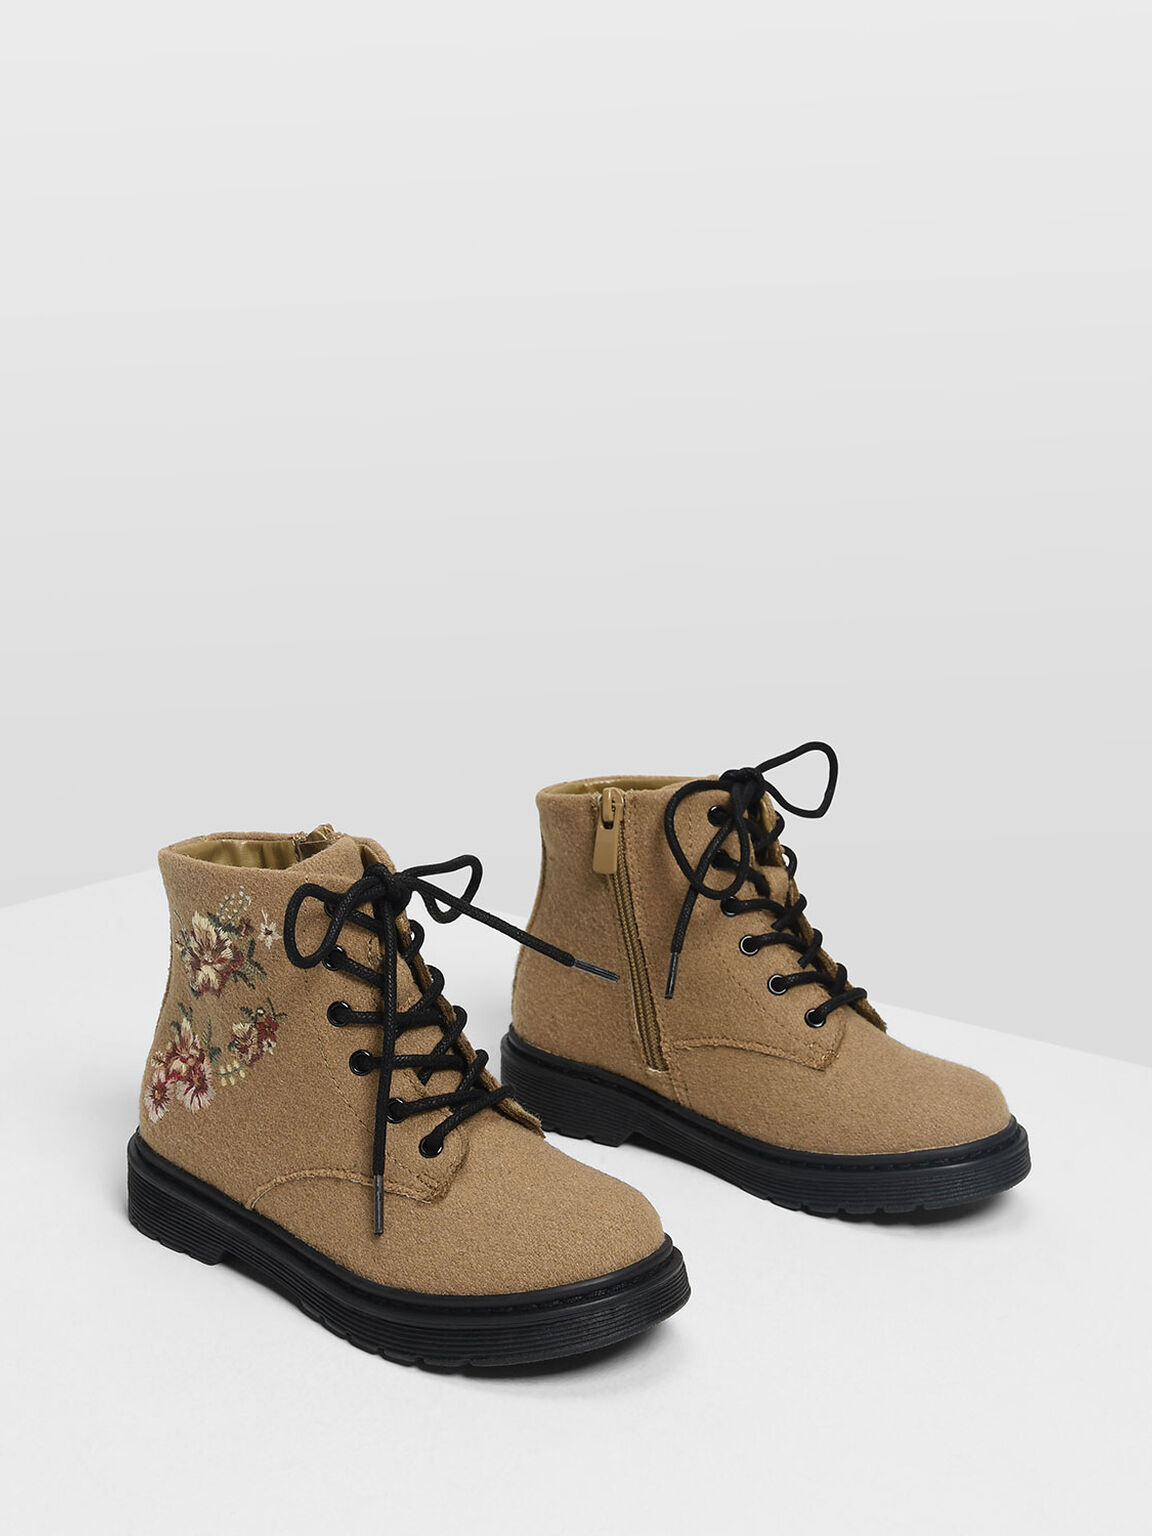 Kids Floral Embroidery Boots, Beige, hi-res